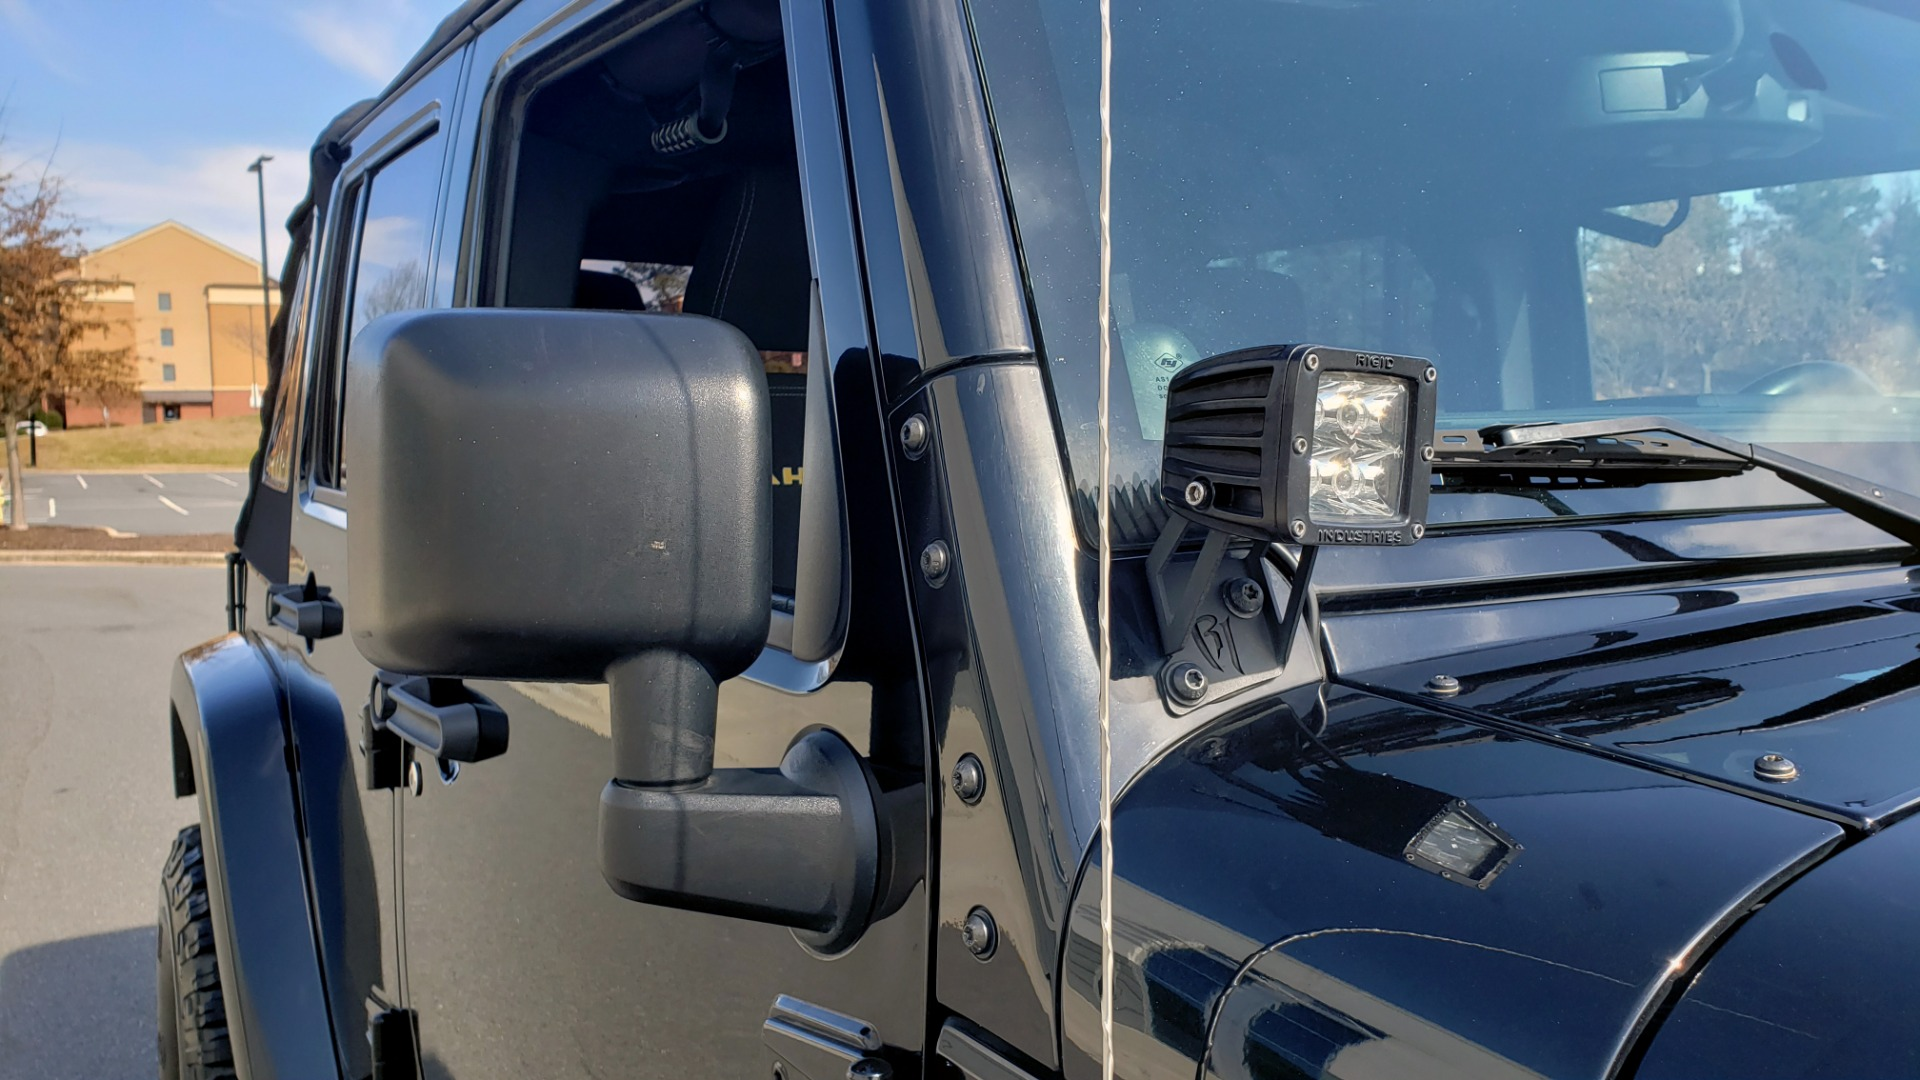 Used 2014 Jeep WRANGLER UNLIMITED SAHARA 4X4 / 3.6L V6 / 5-SPD AUTO / NAV / TOW PKG / SOFT-TOP for sale $24,795 at Formula Imports in Charlotte NC 28227 28